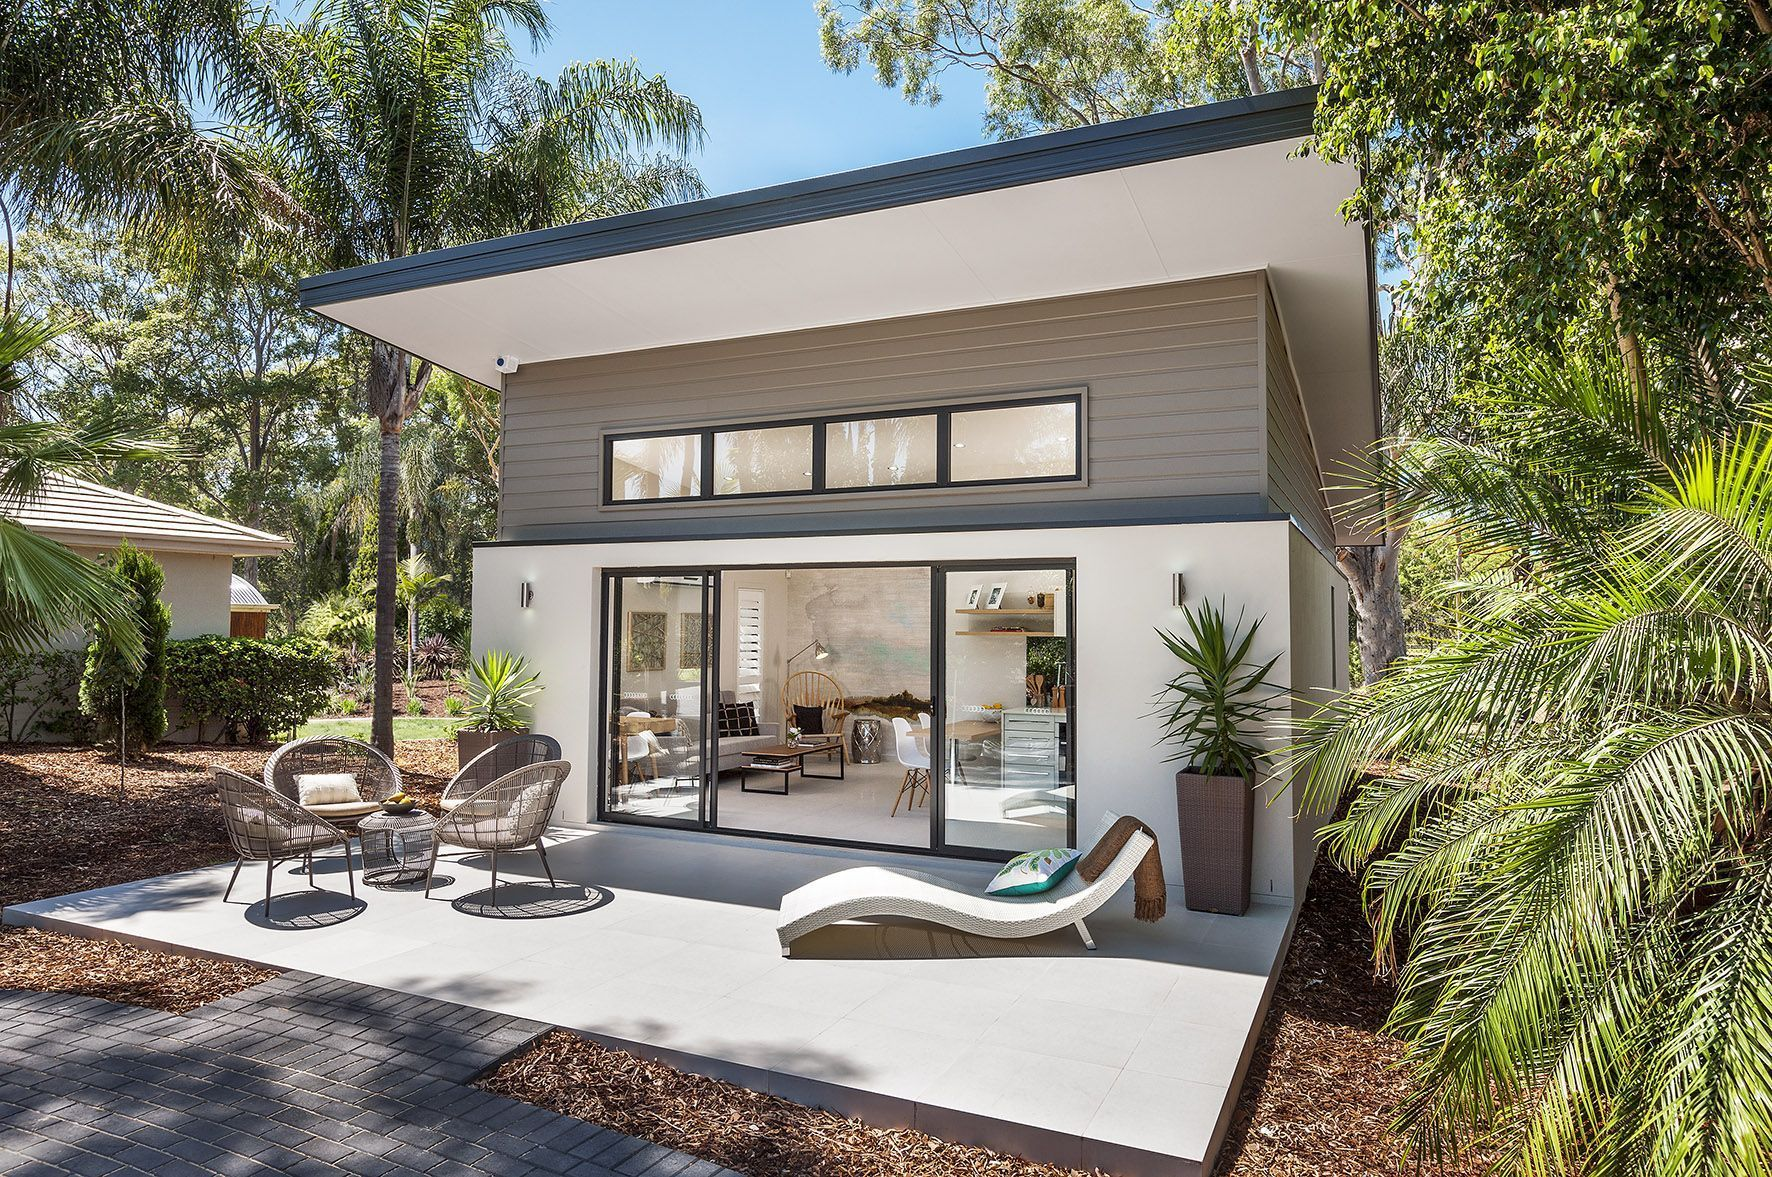 Image result for guest house pool cabana skillion roof ...